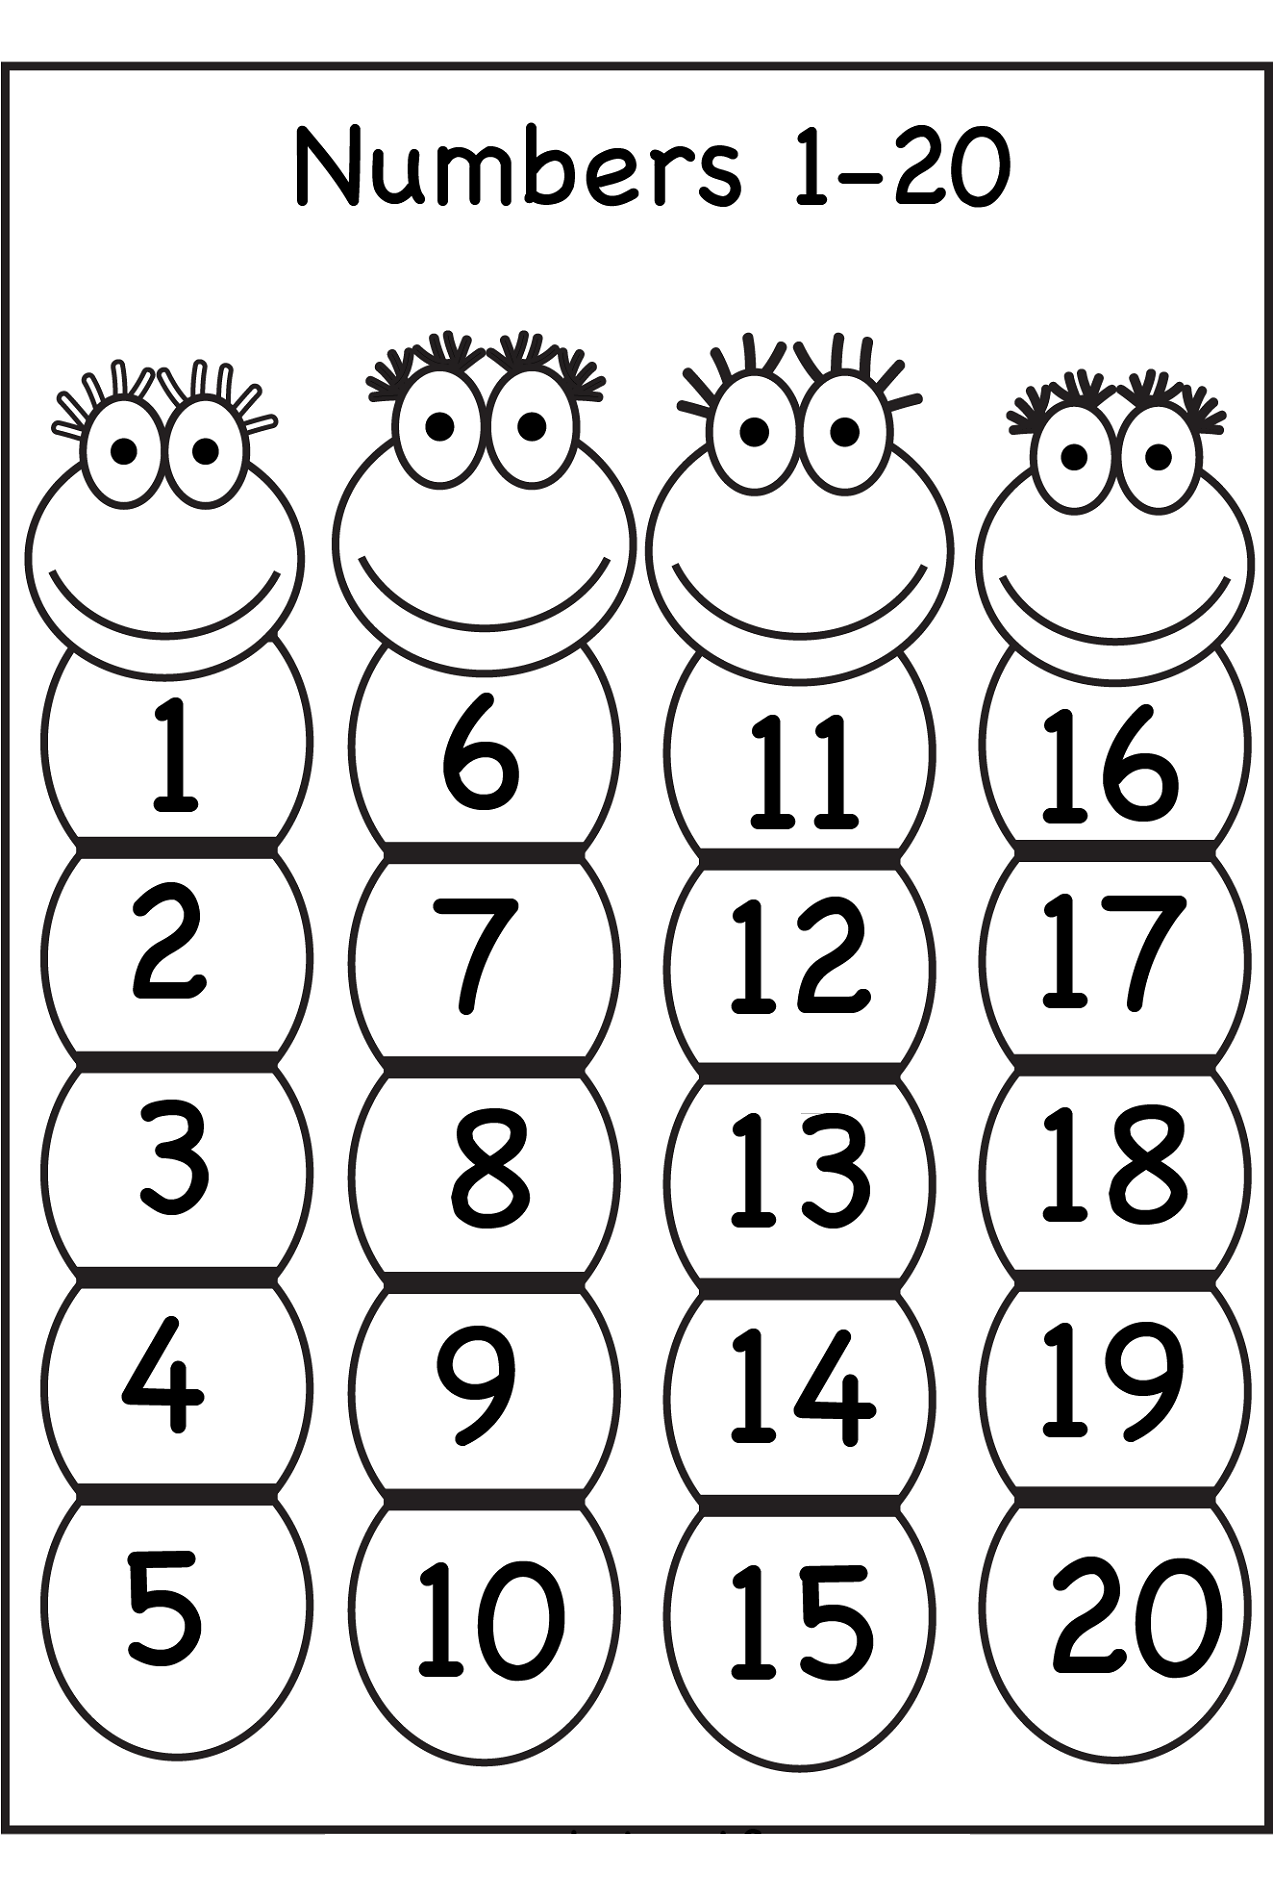 worksheet Numbers 1-20 Worksheets trace numbers 1 20 counting kid stuff pinterest worksheets counting